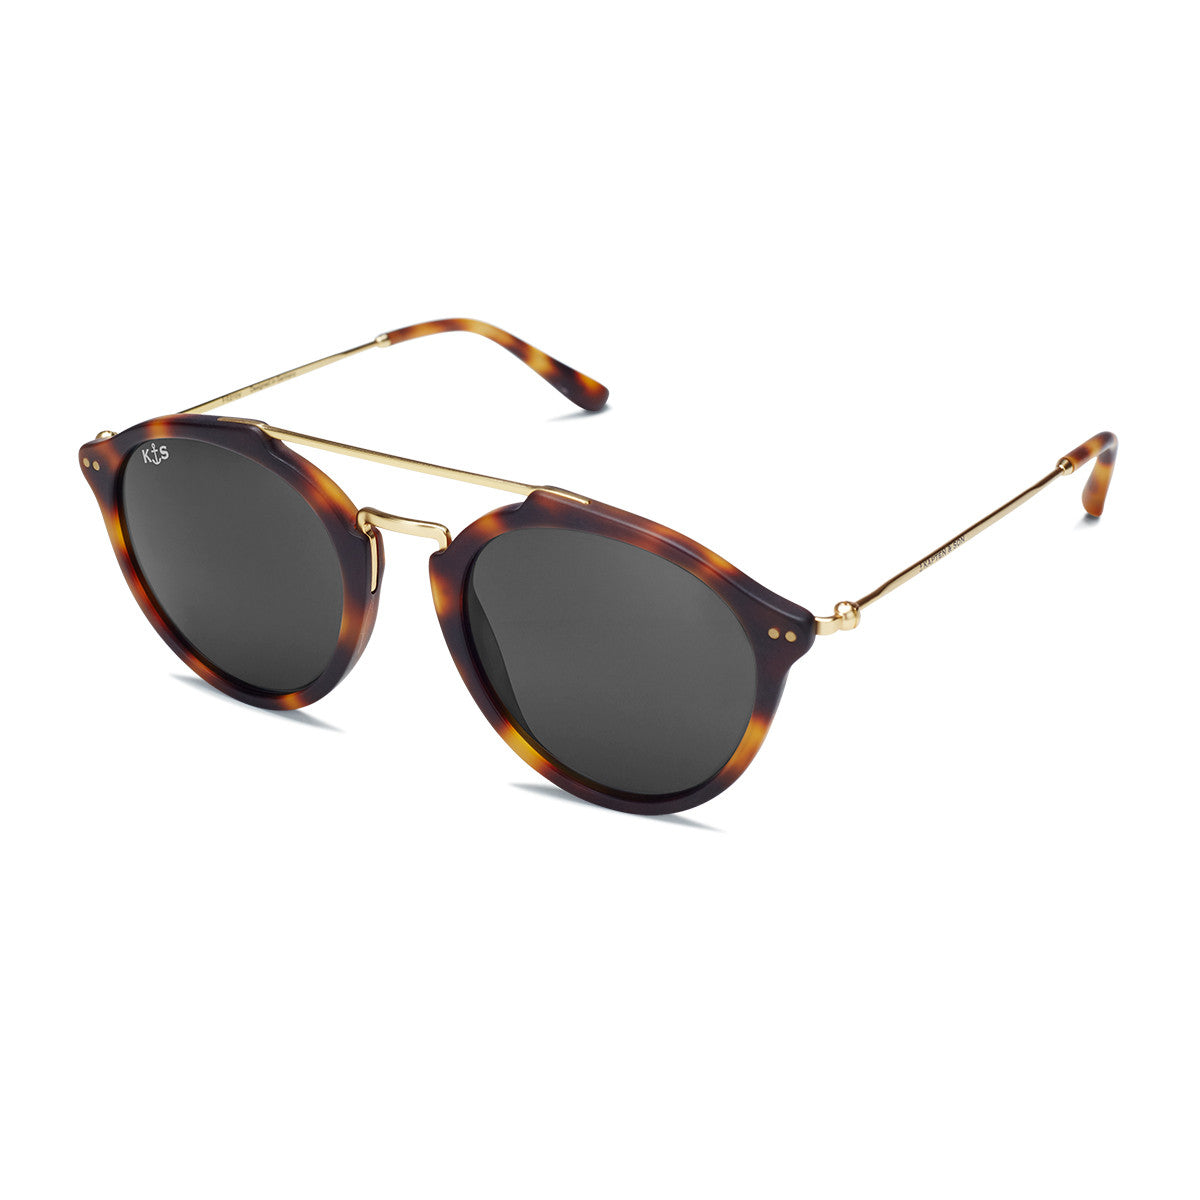 Fitzroy Matt Tortoise Black - Kapten & Son - Japan